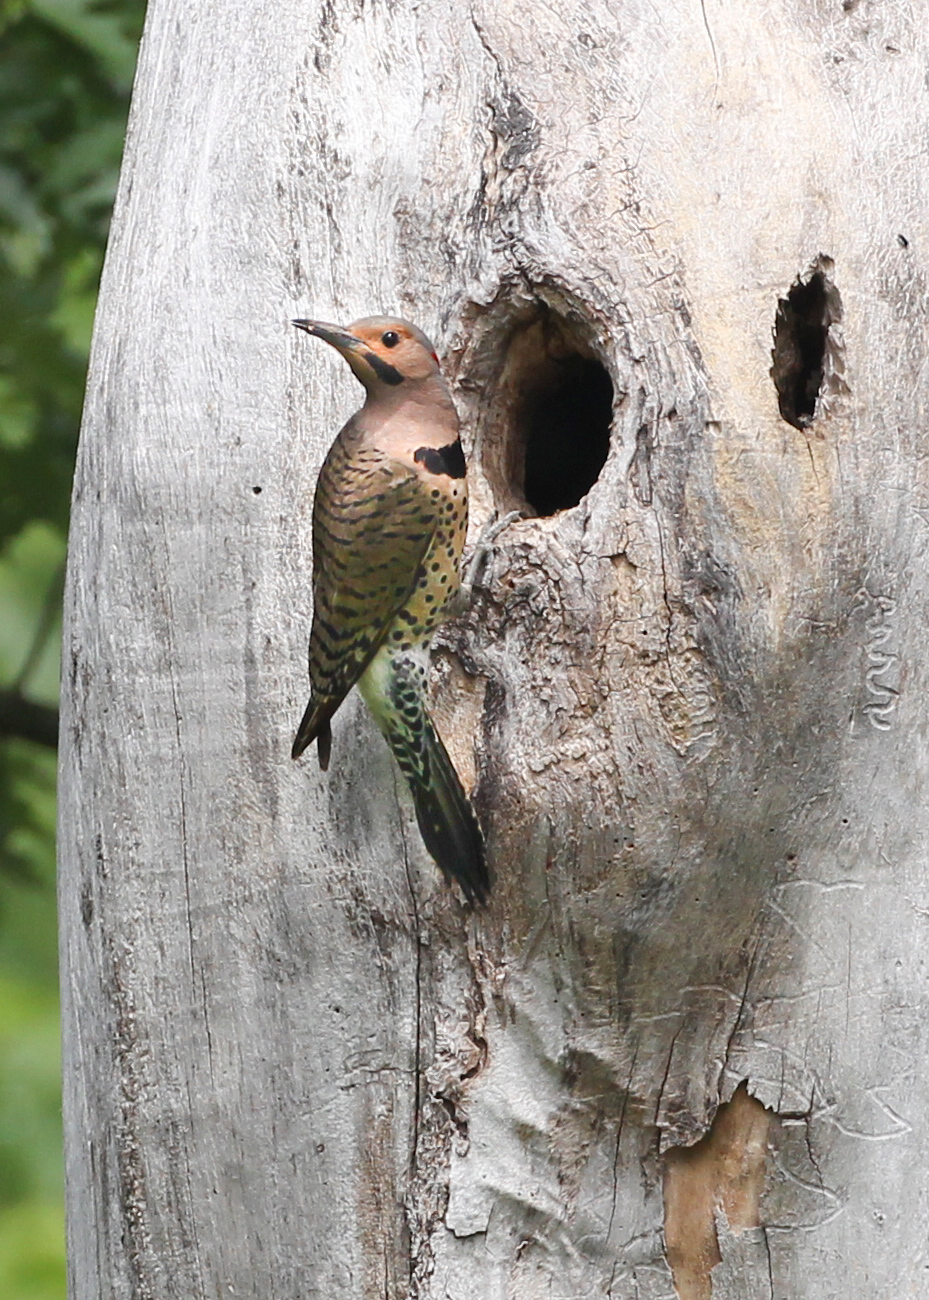 Northern Flicker at nest, Photographed along the river levee on the Rothrock property, Vigo County, Indiana, Big May Day Bird Count, May 12, 2012.   Flicker nest was in the same tree and only 10 feet below red-headed woodpecker nest hole.